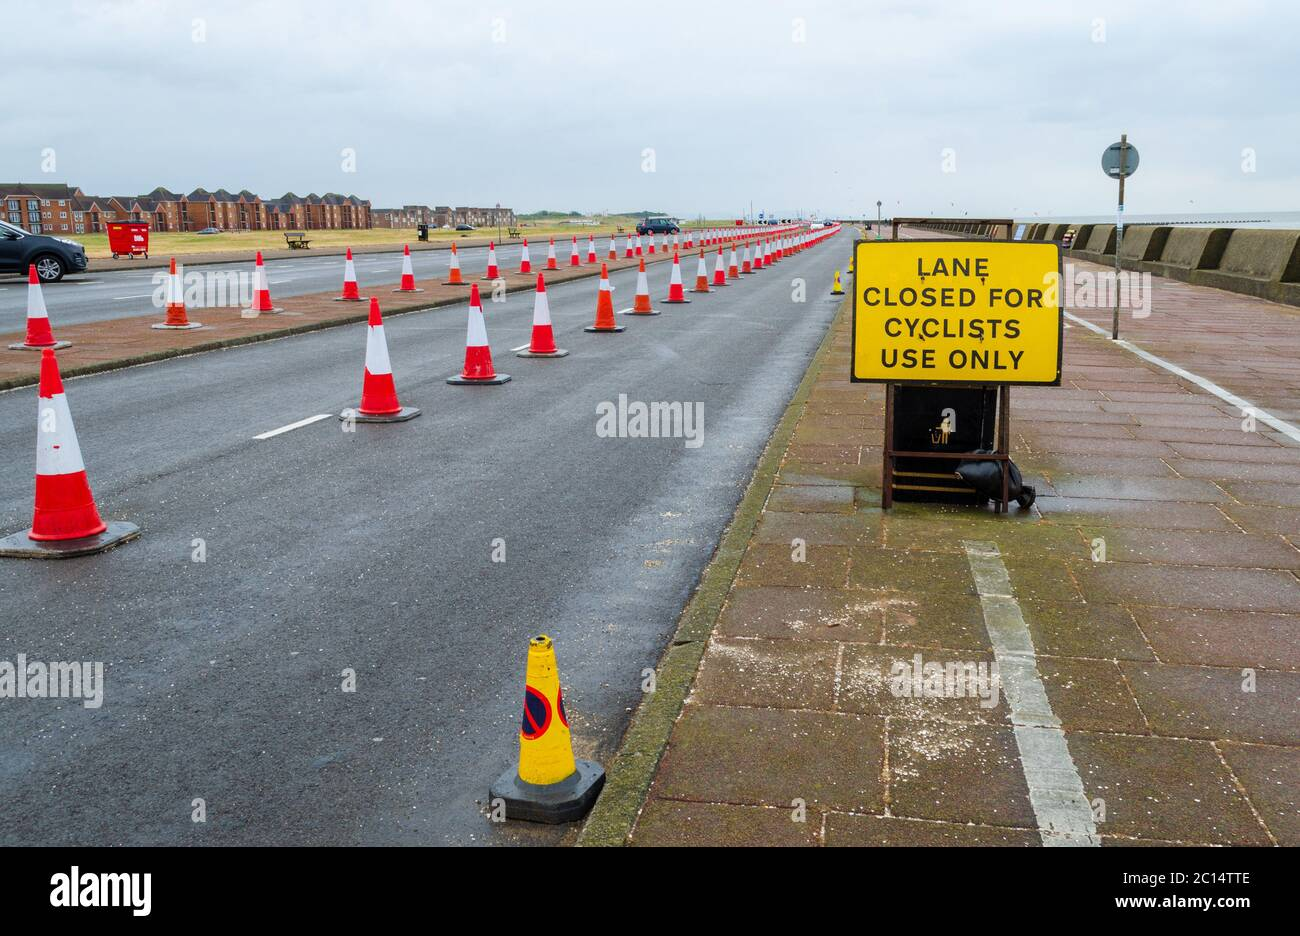 New Brighton, UK: Jun 11, 2020: One lane of the dual carriageway of New Brighton promenade has been closed using traffic cones. This is to allow socia Stock Photo